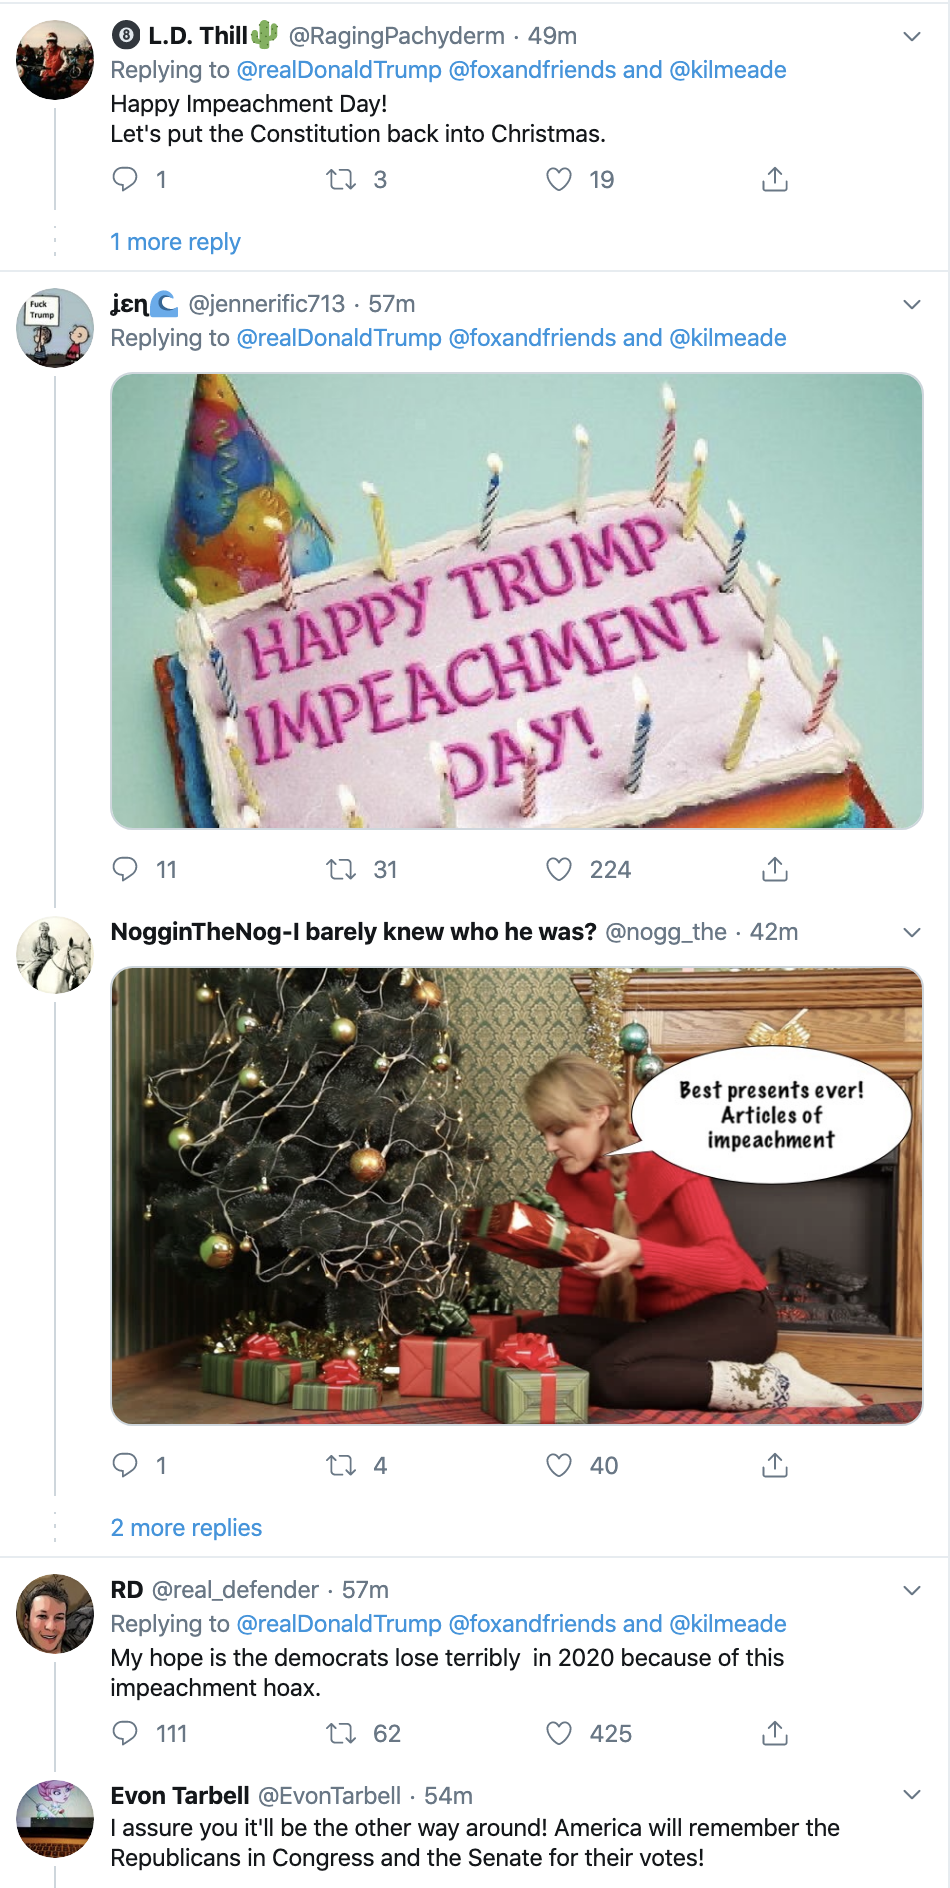 Screen-Shot-2019-12-18-at-7.10.34-AM Trump Launches Pre-Dawn Impeachment Induced Mental Breakdown Donald Trump Featured Impeachment Social Media Top Stories